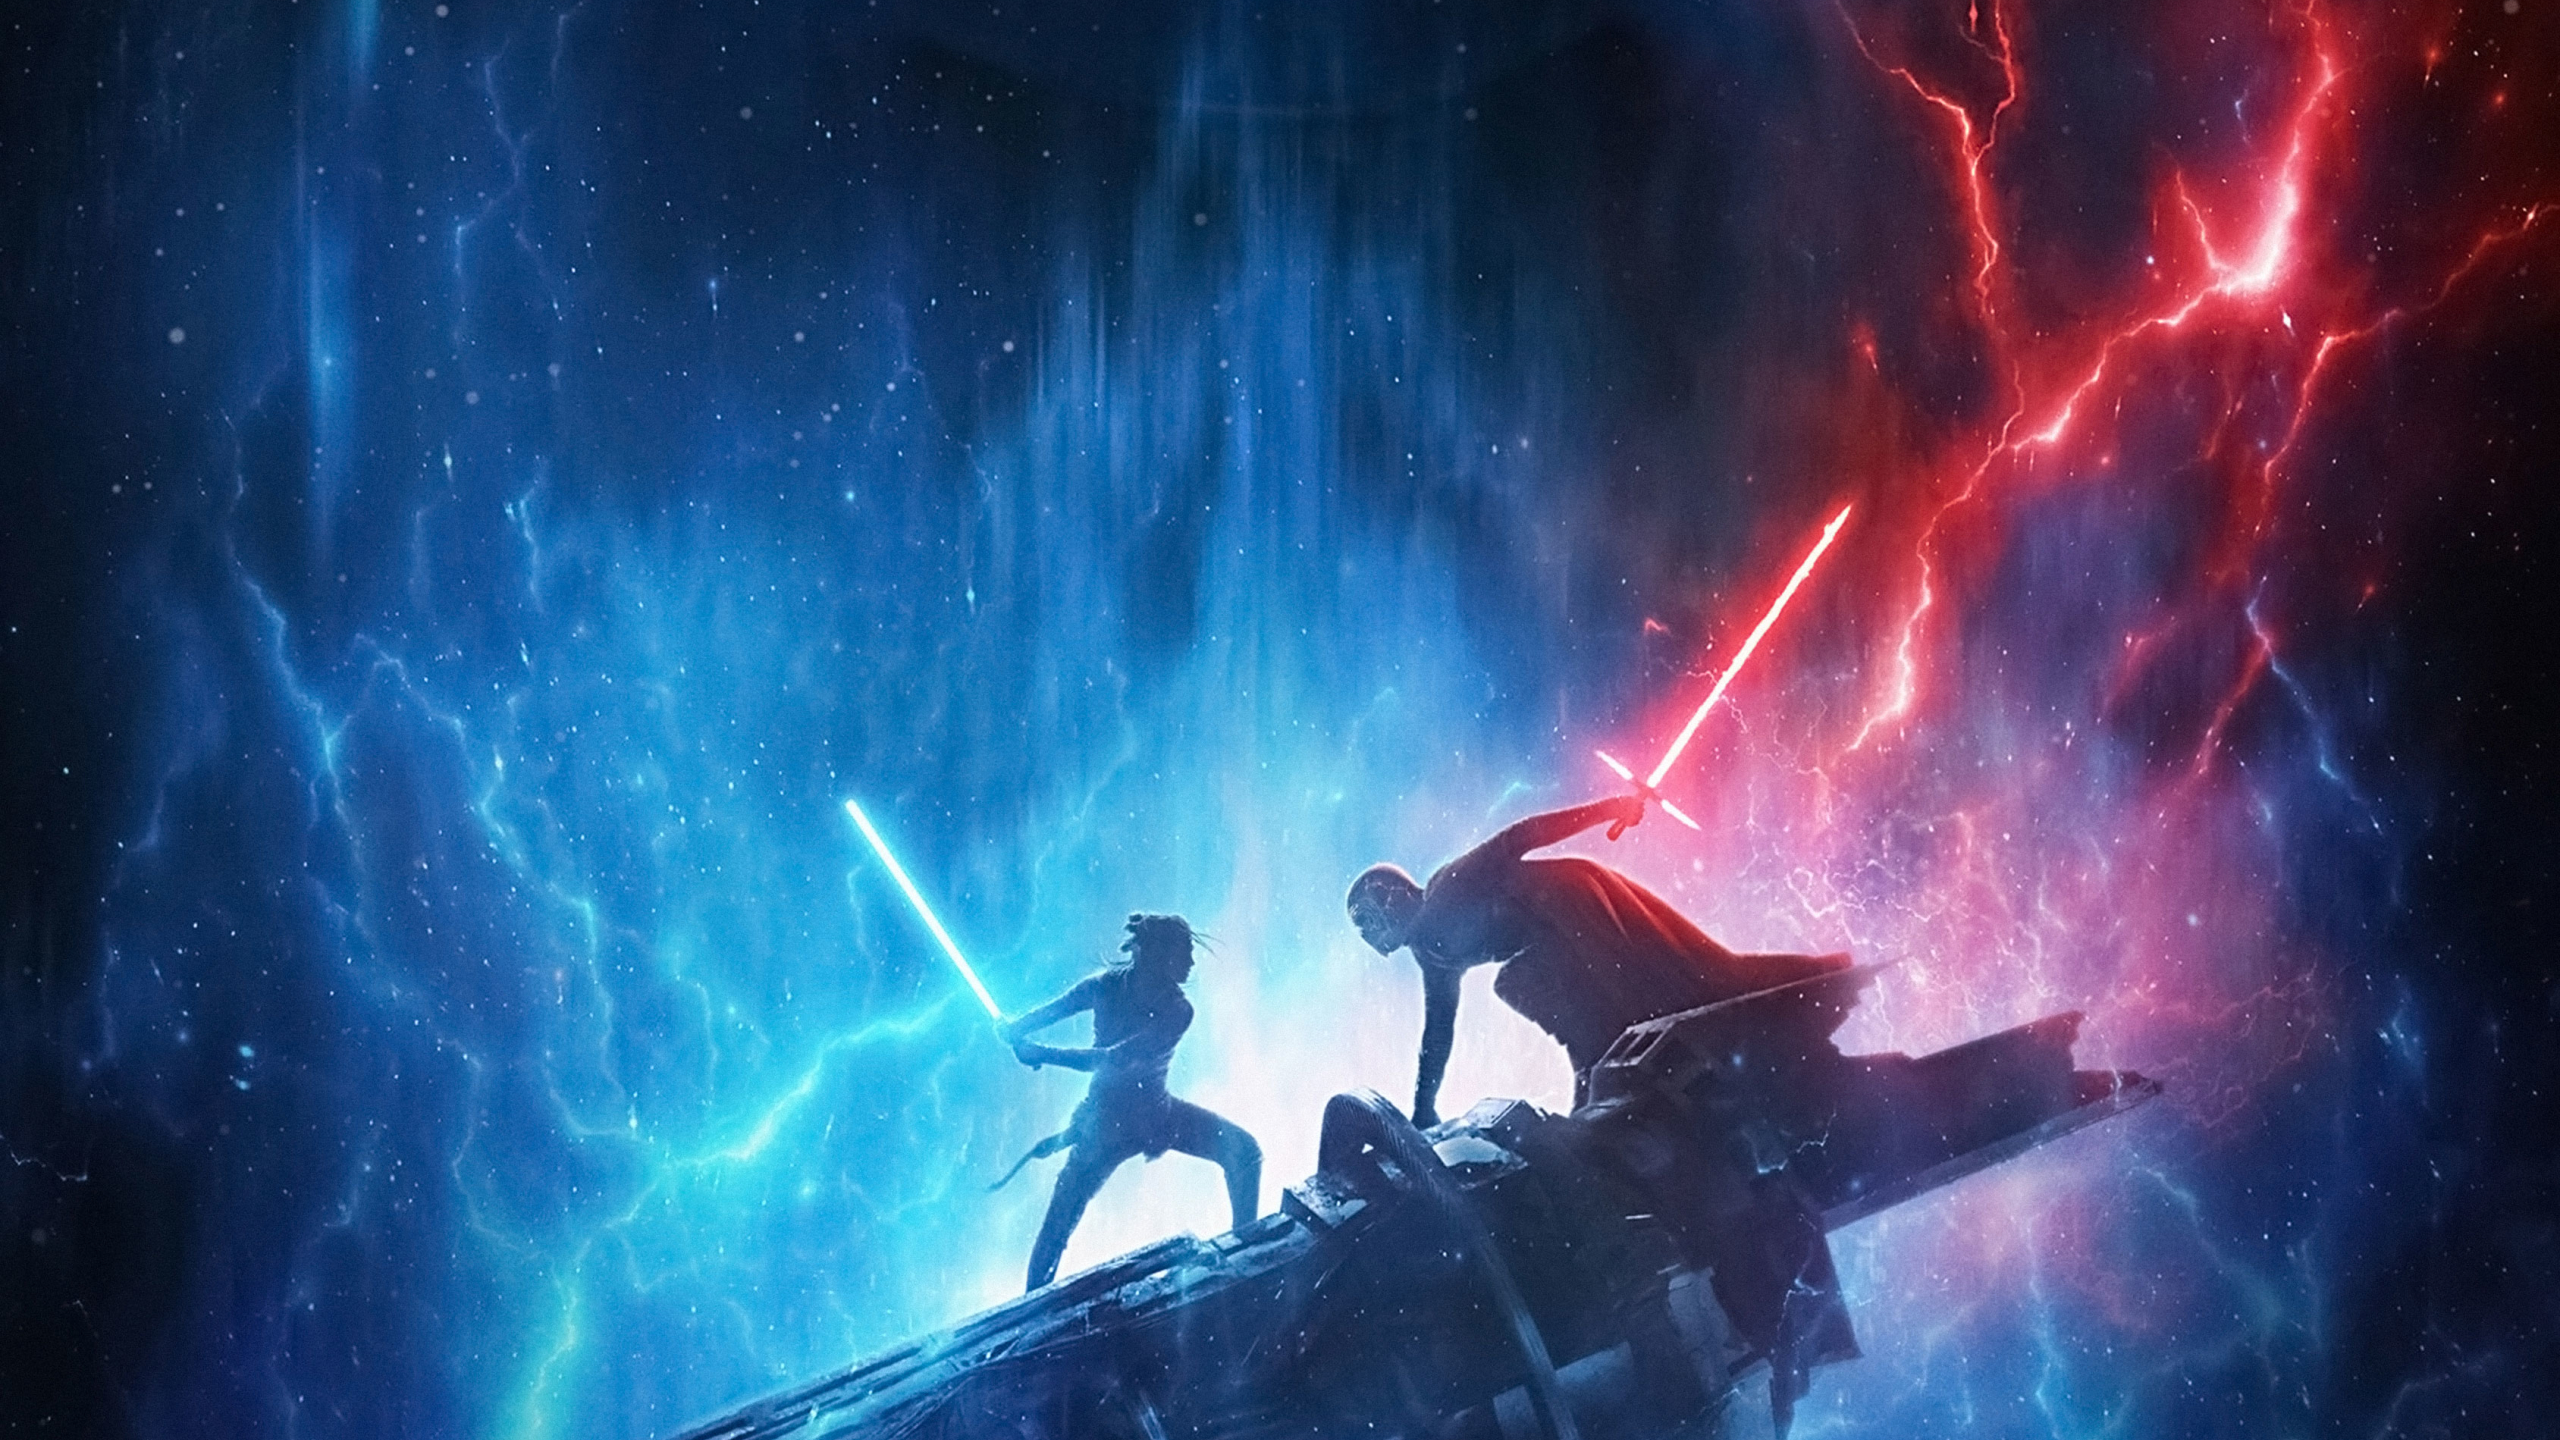 2560x1440 Star Wars The Rise Of Skywalker 1440p Resolution